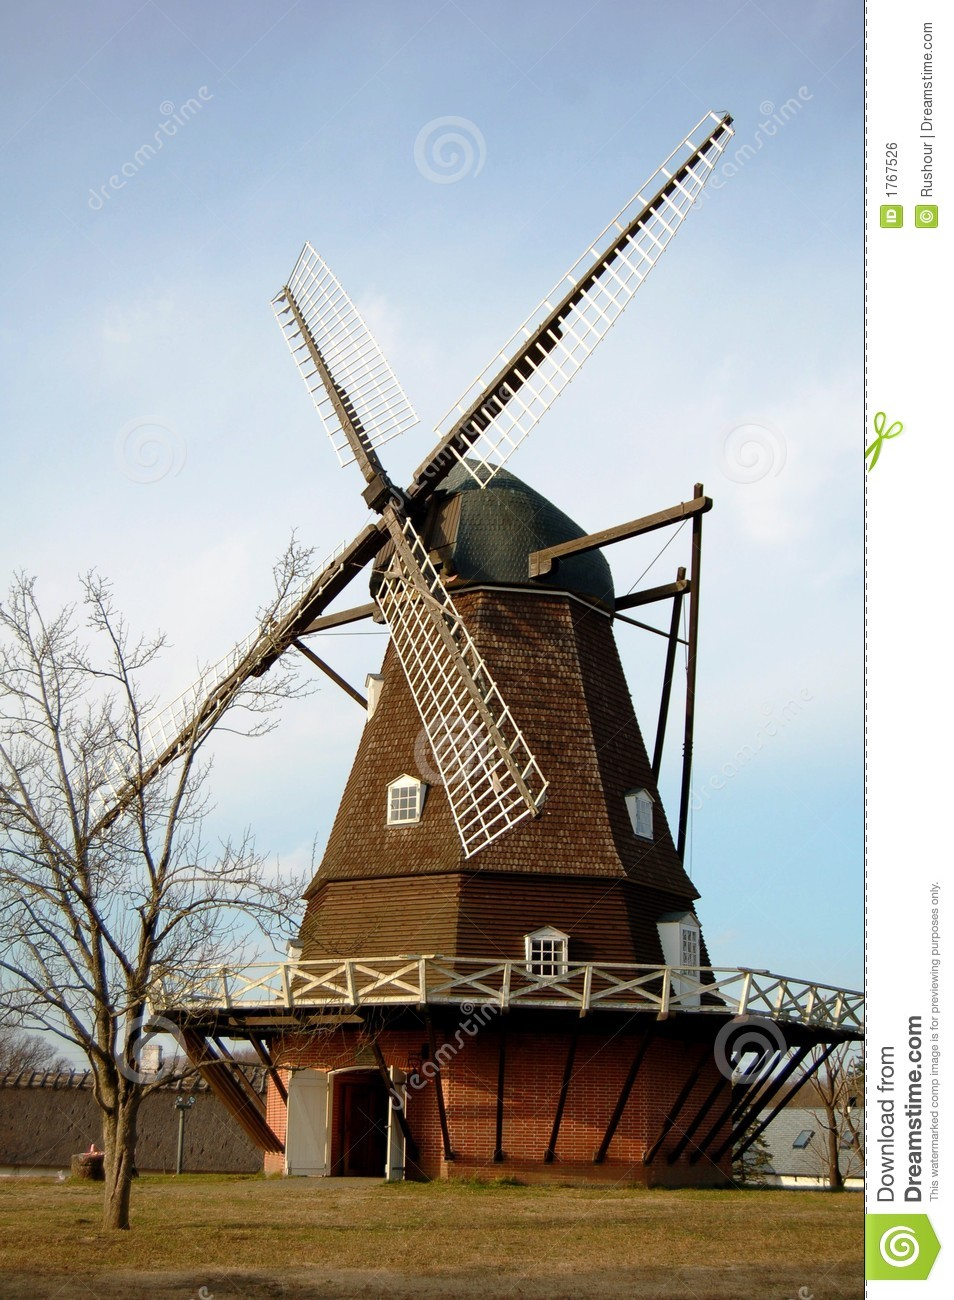 solars: Access Free wooden dutch windmill plans